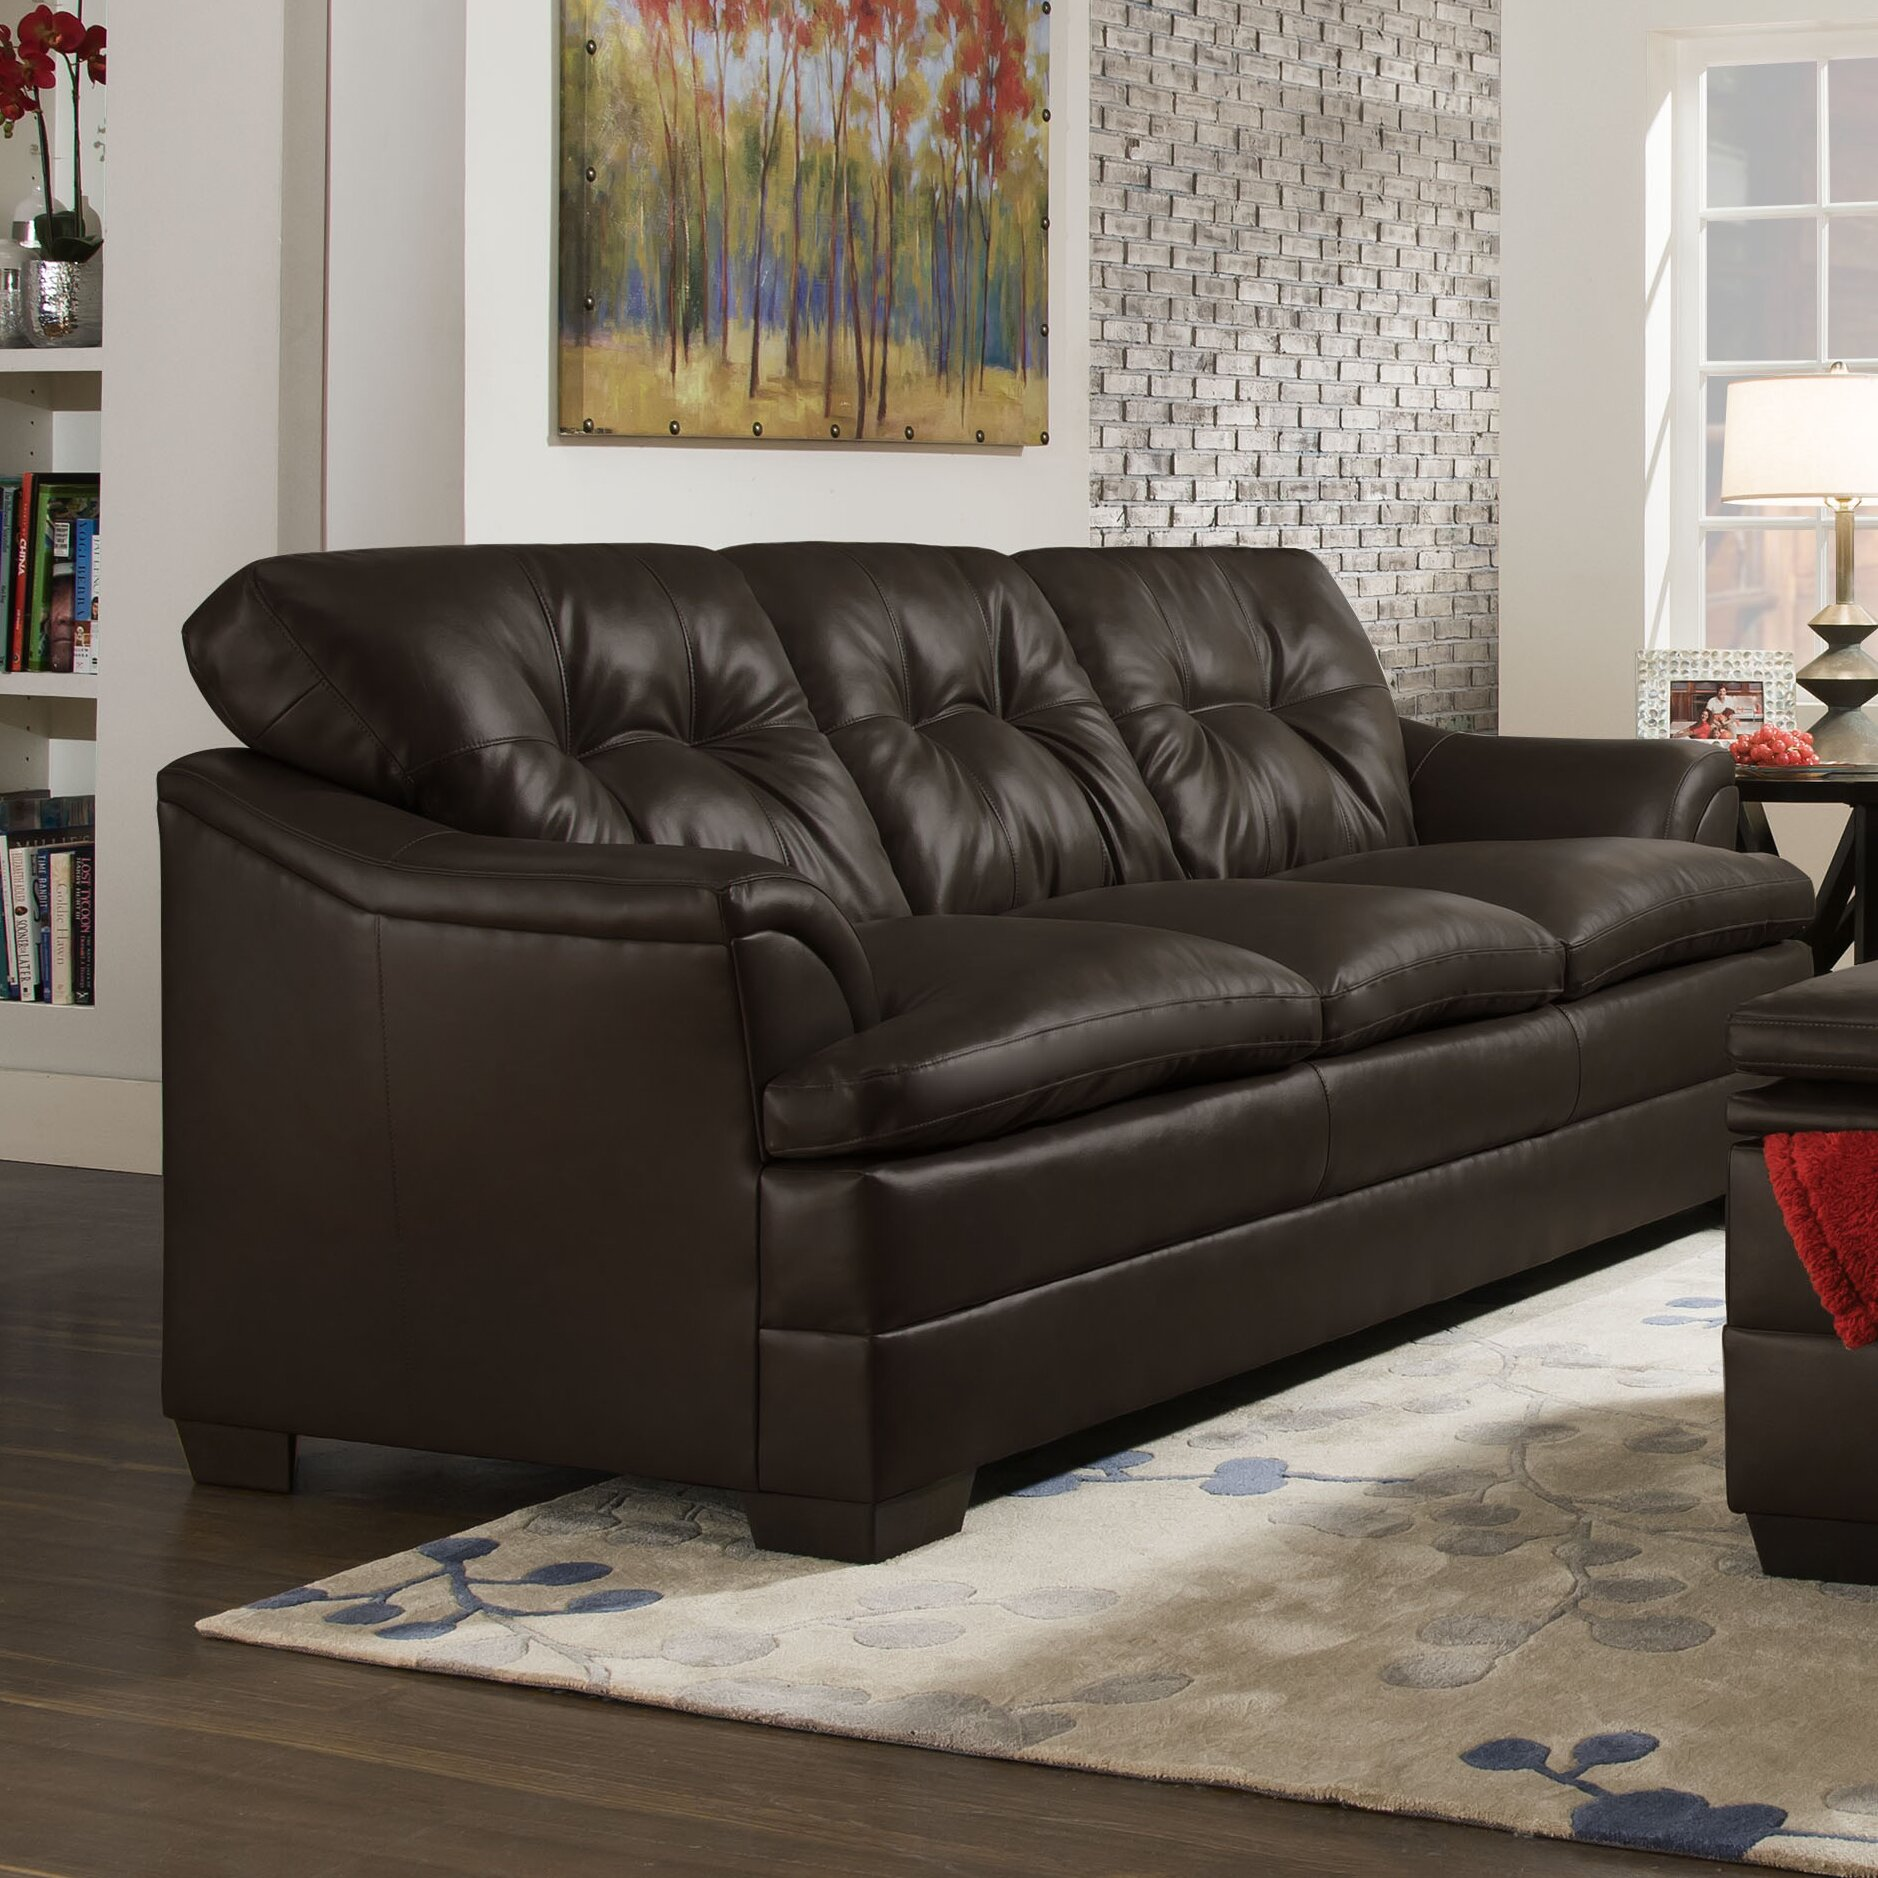 Simmons Upholstery Apollo Sofa Reviews Wayfair